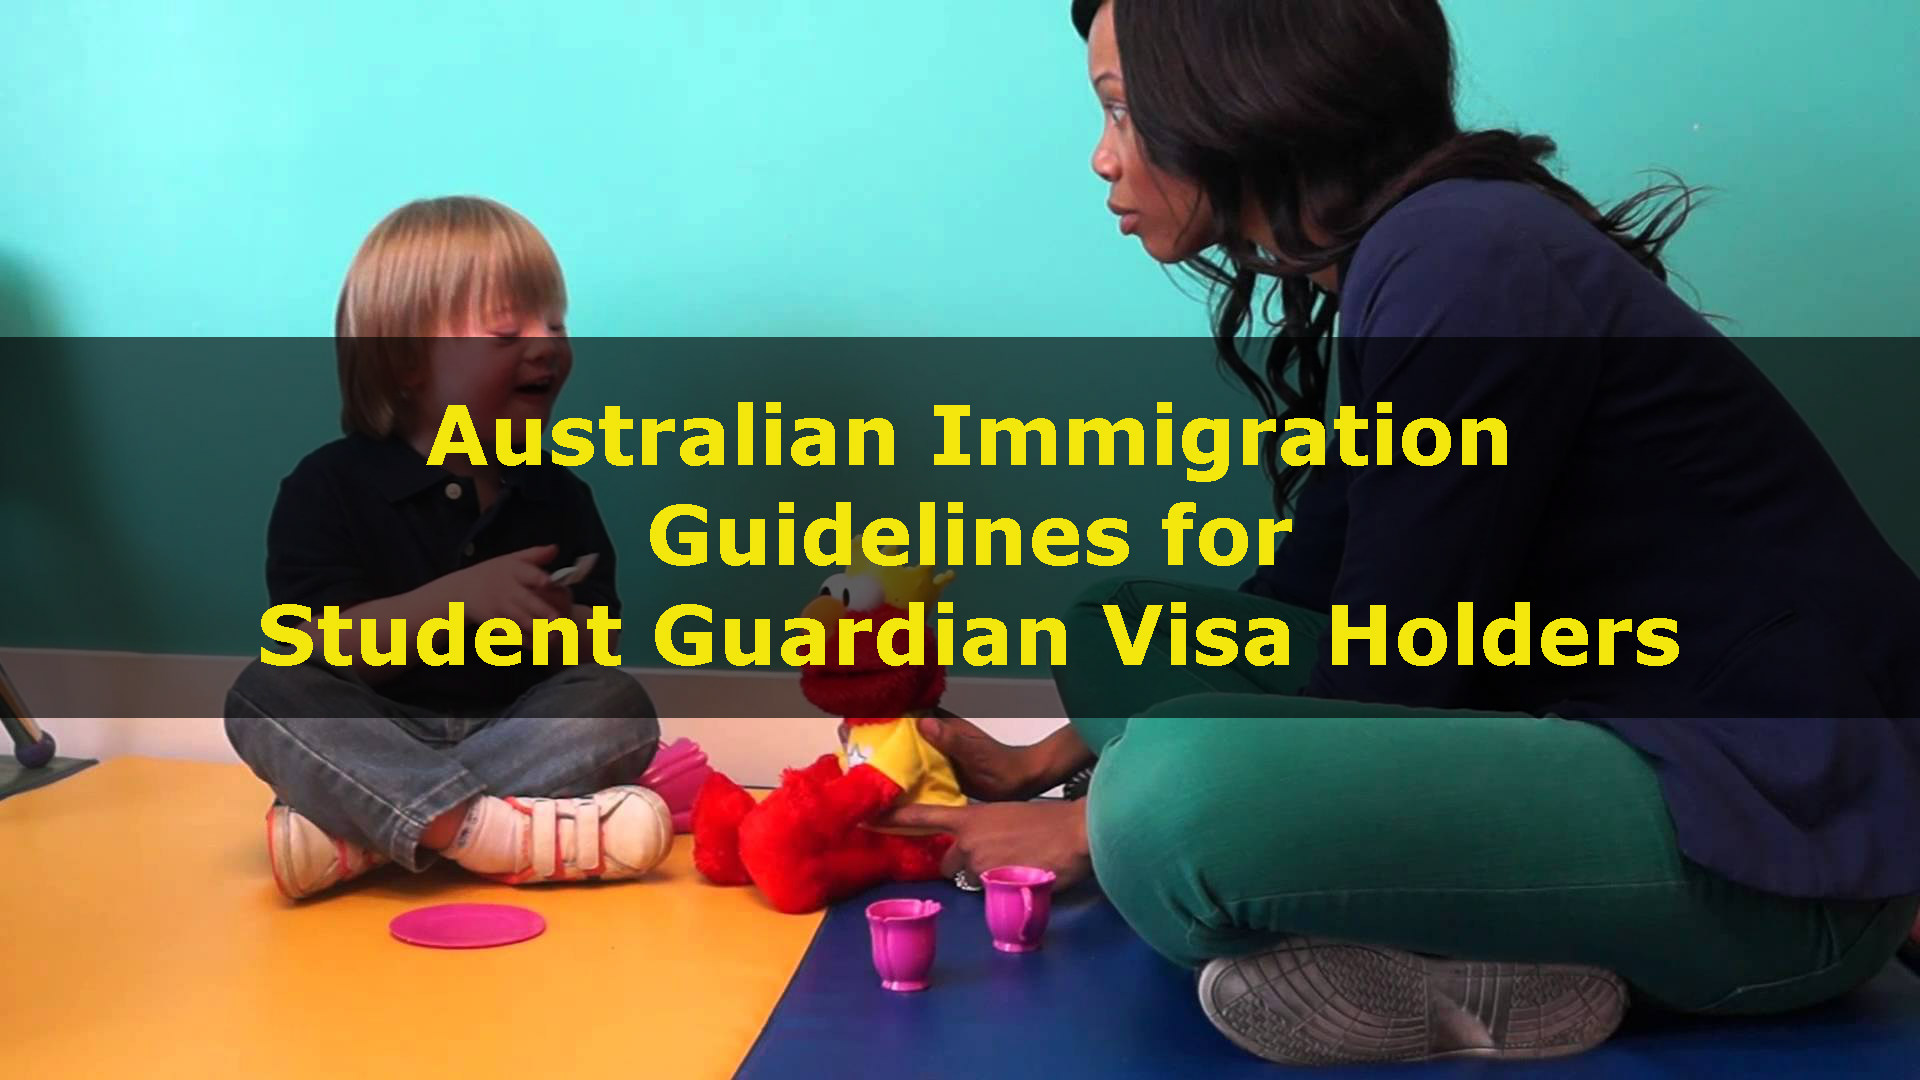 Australian Immigration Guidelines for Student Guardian Visa Holders